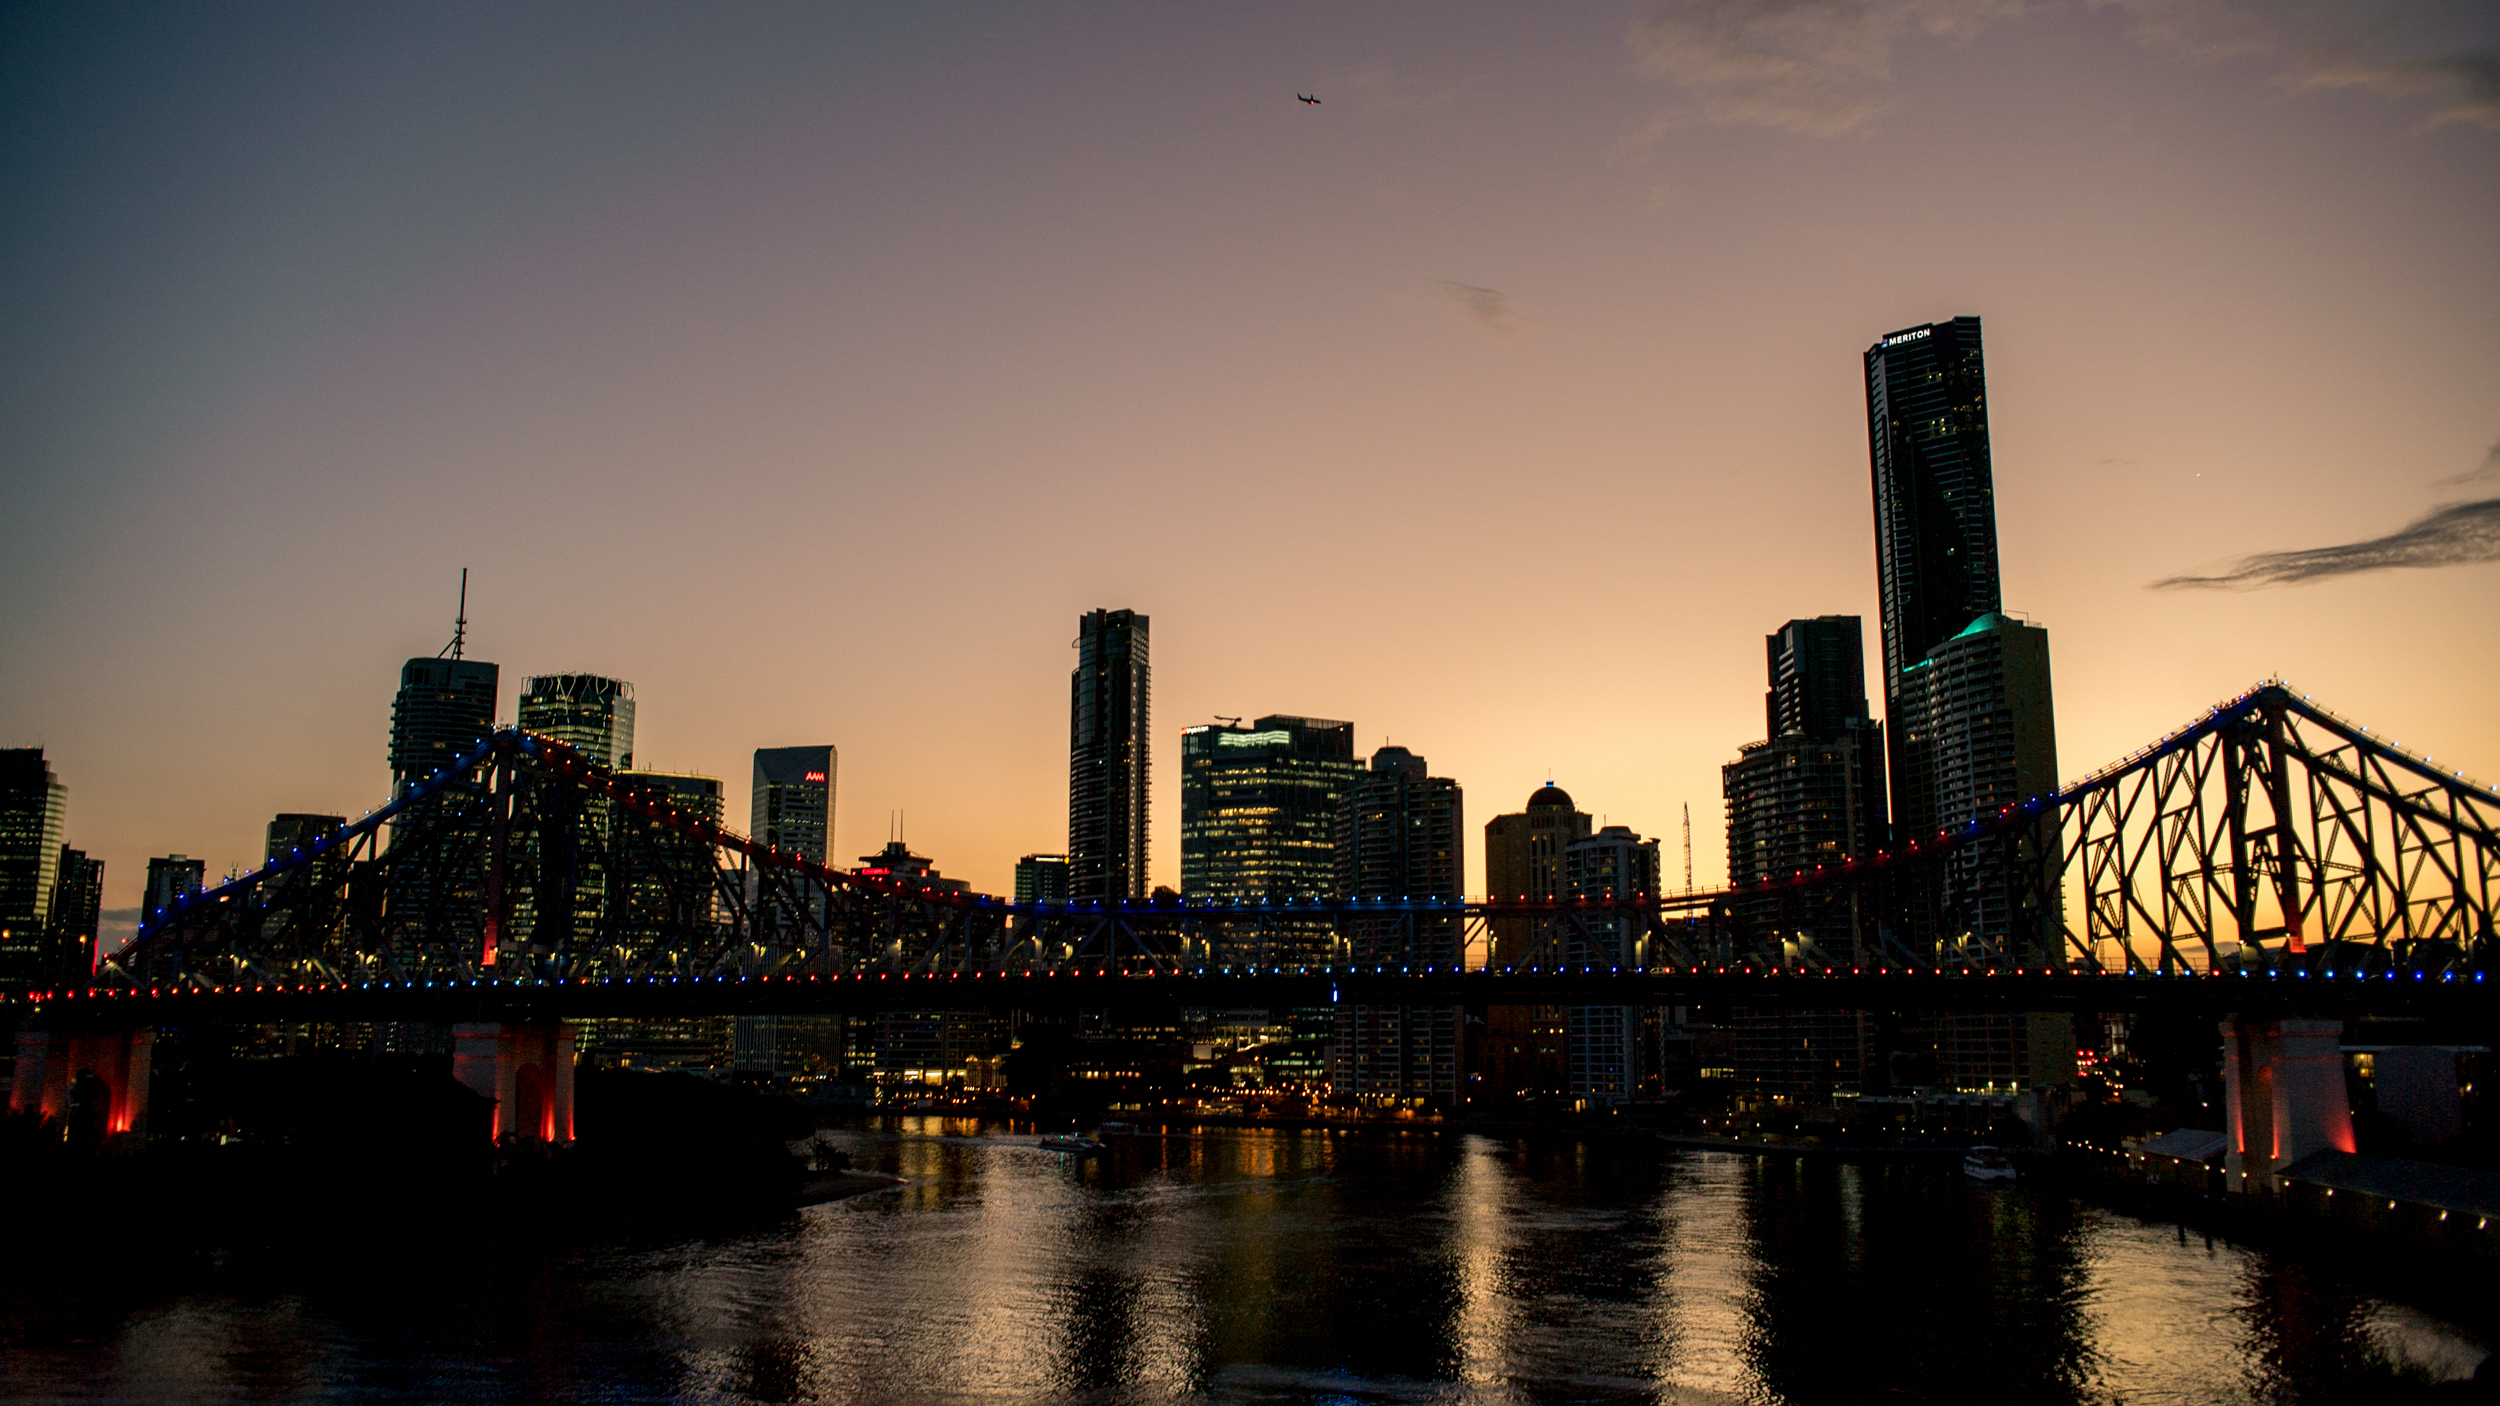 A work by Does - brisbane-11